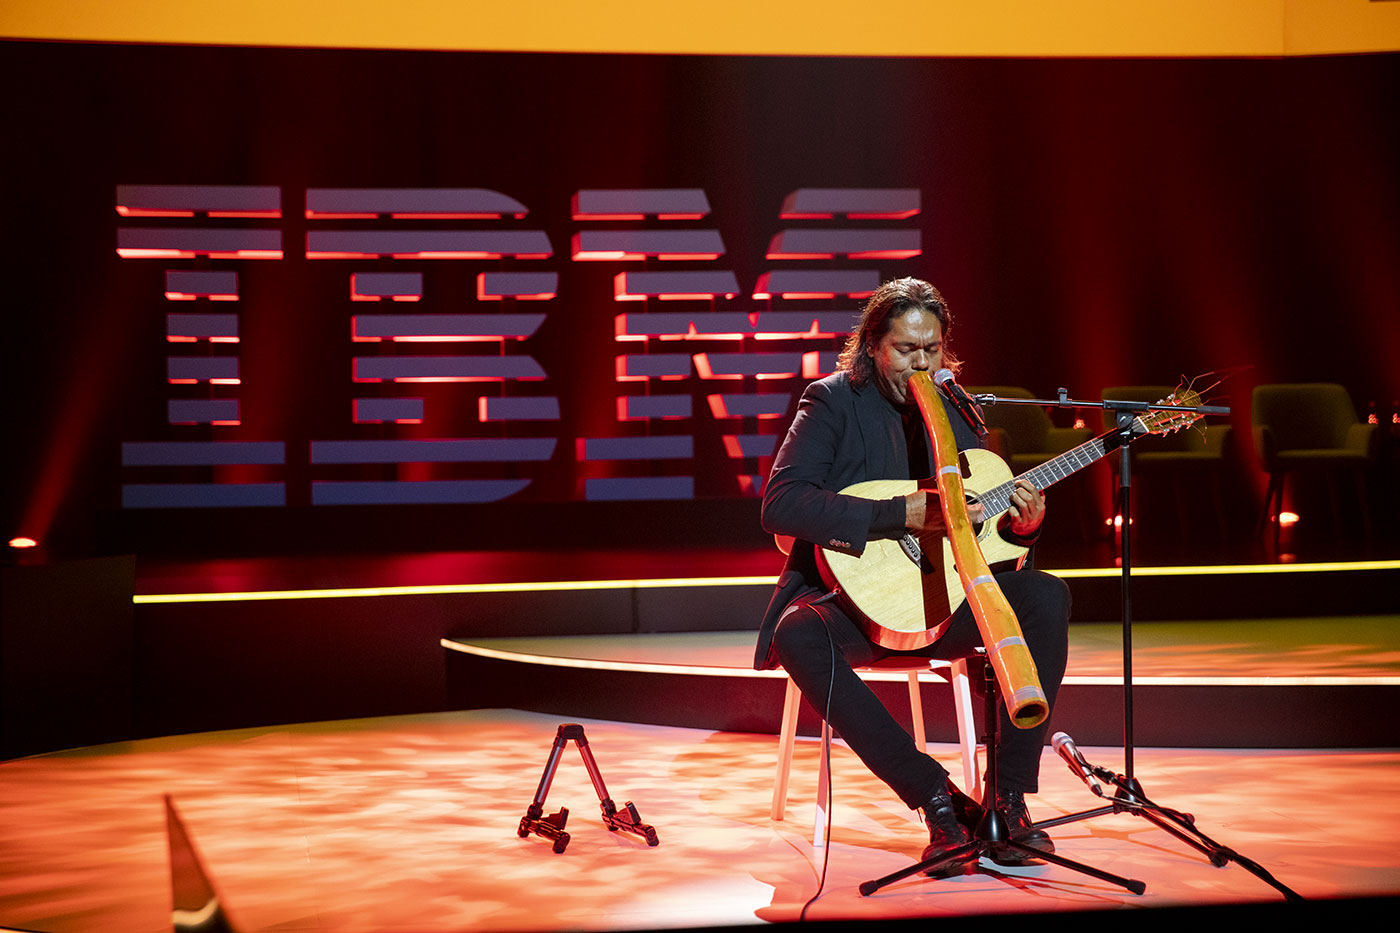 IBM plenary performance at Sydney ICC